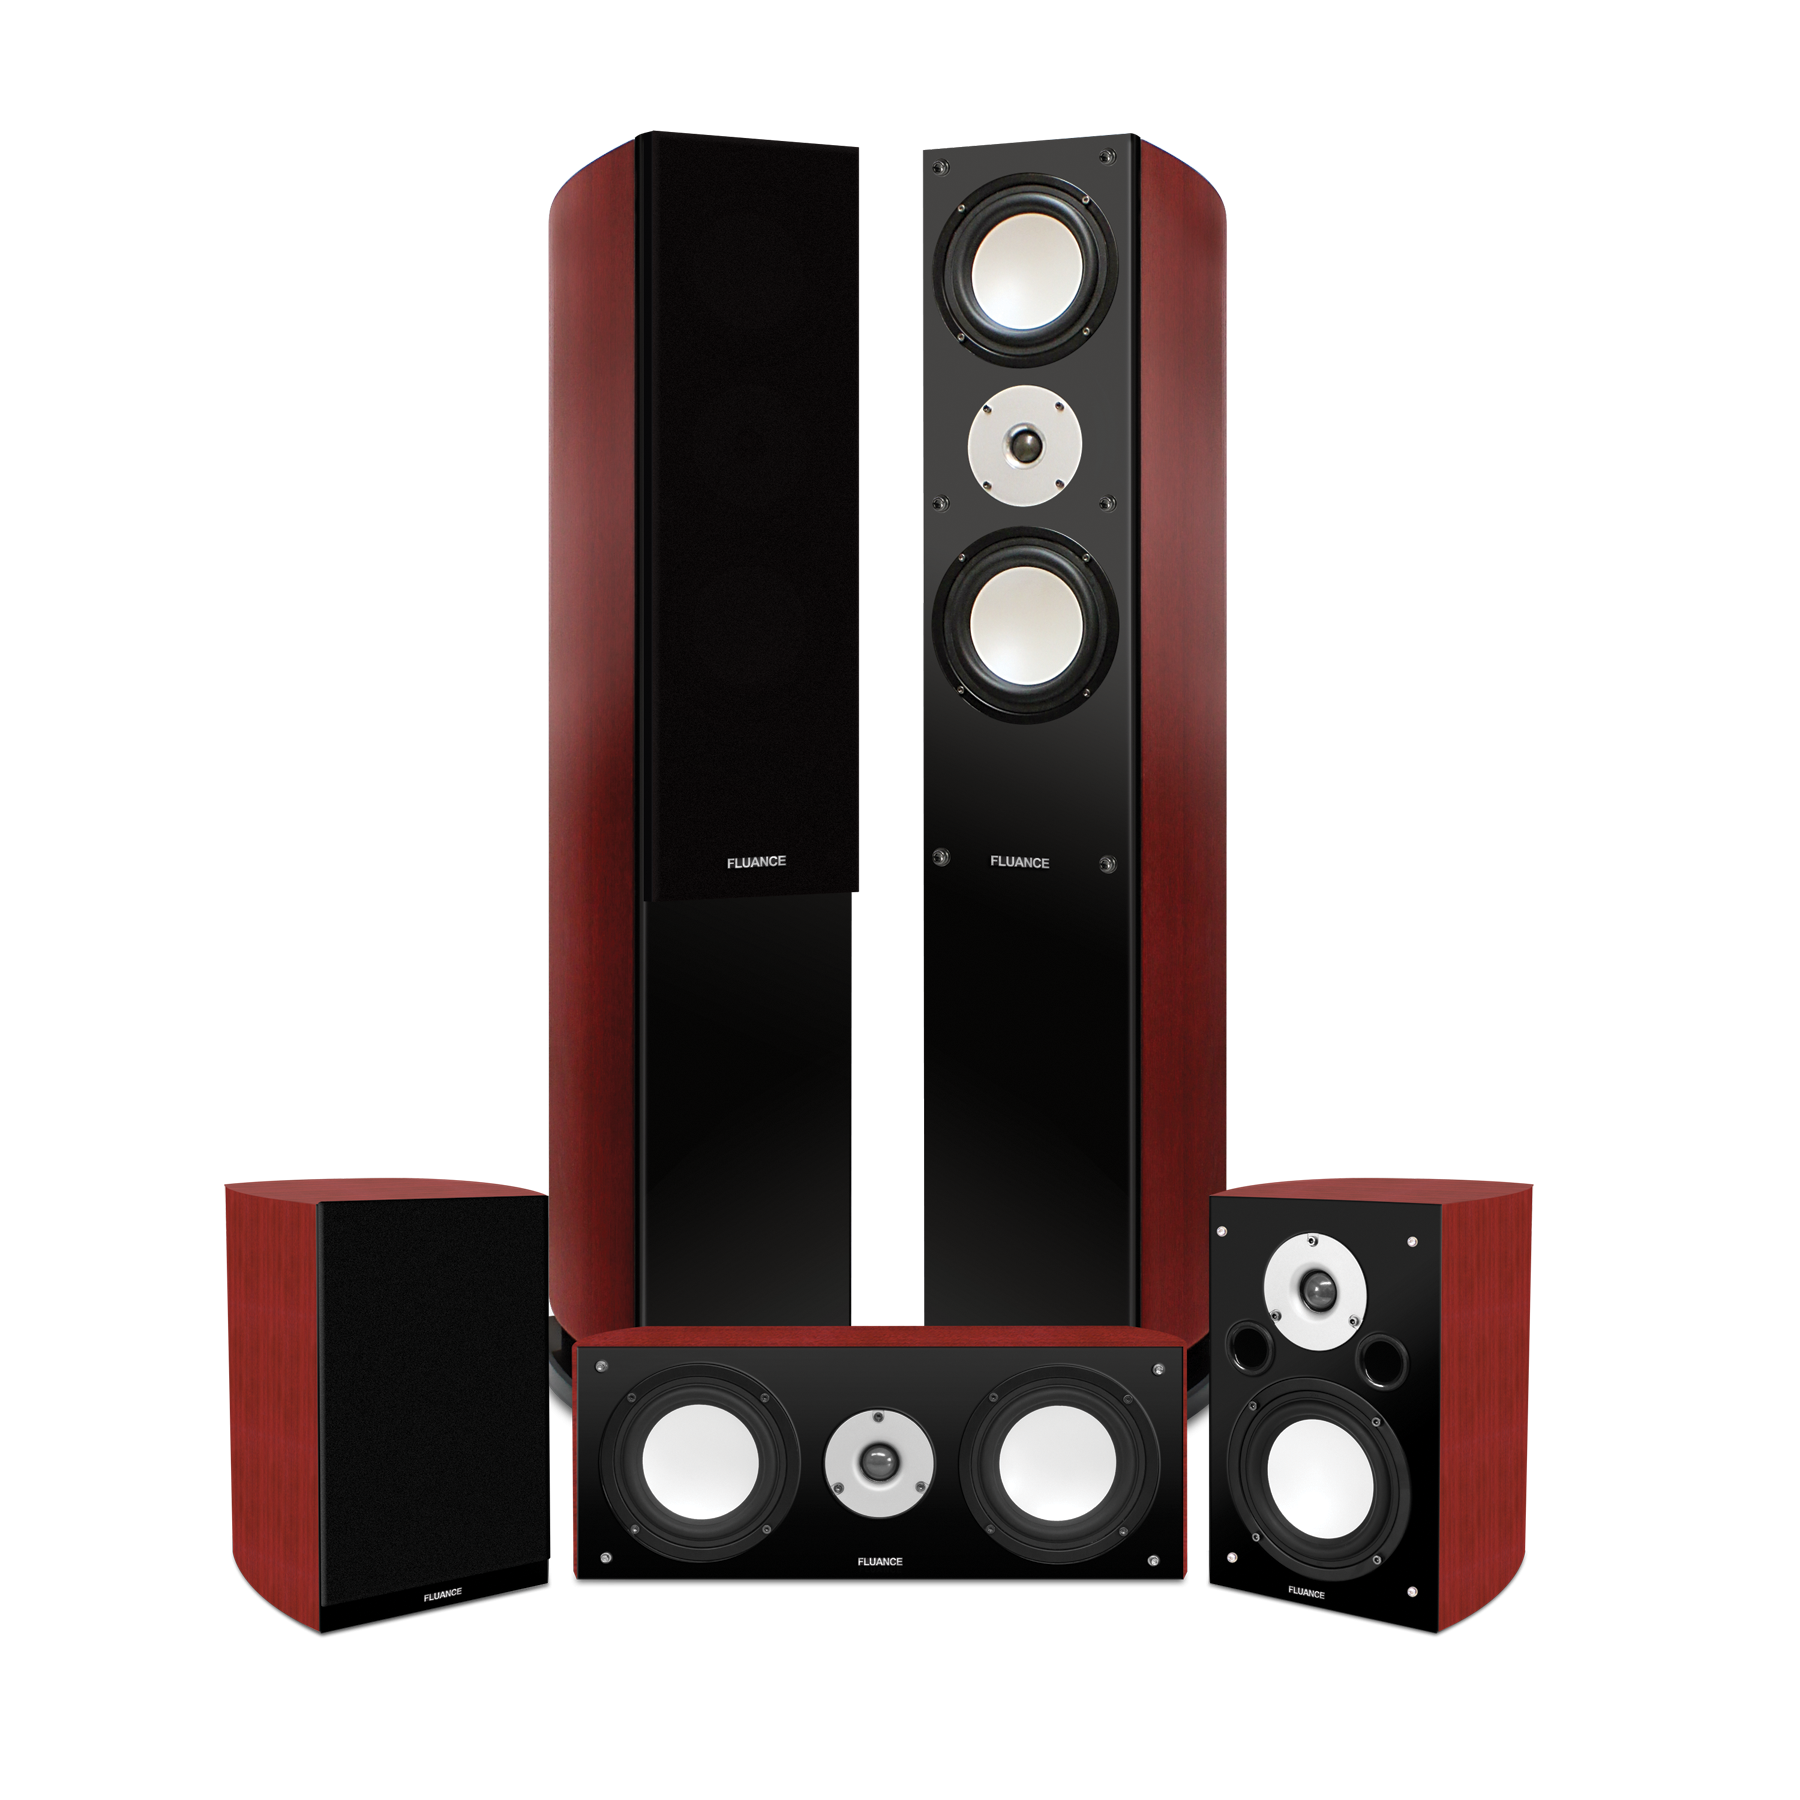 Fluance XLHTB Home Theater Speaker System